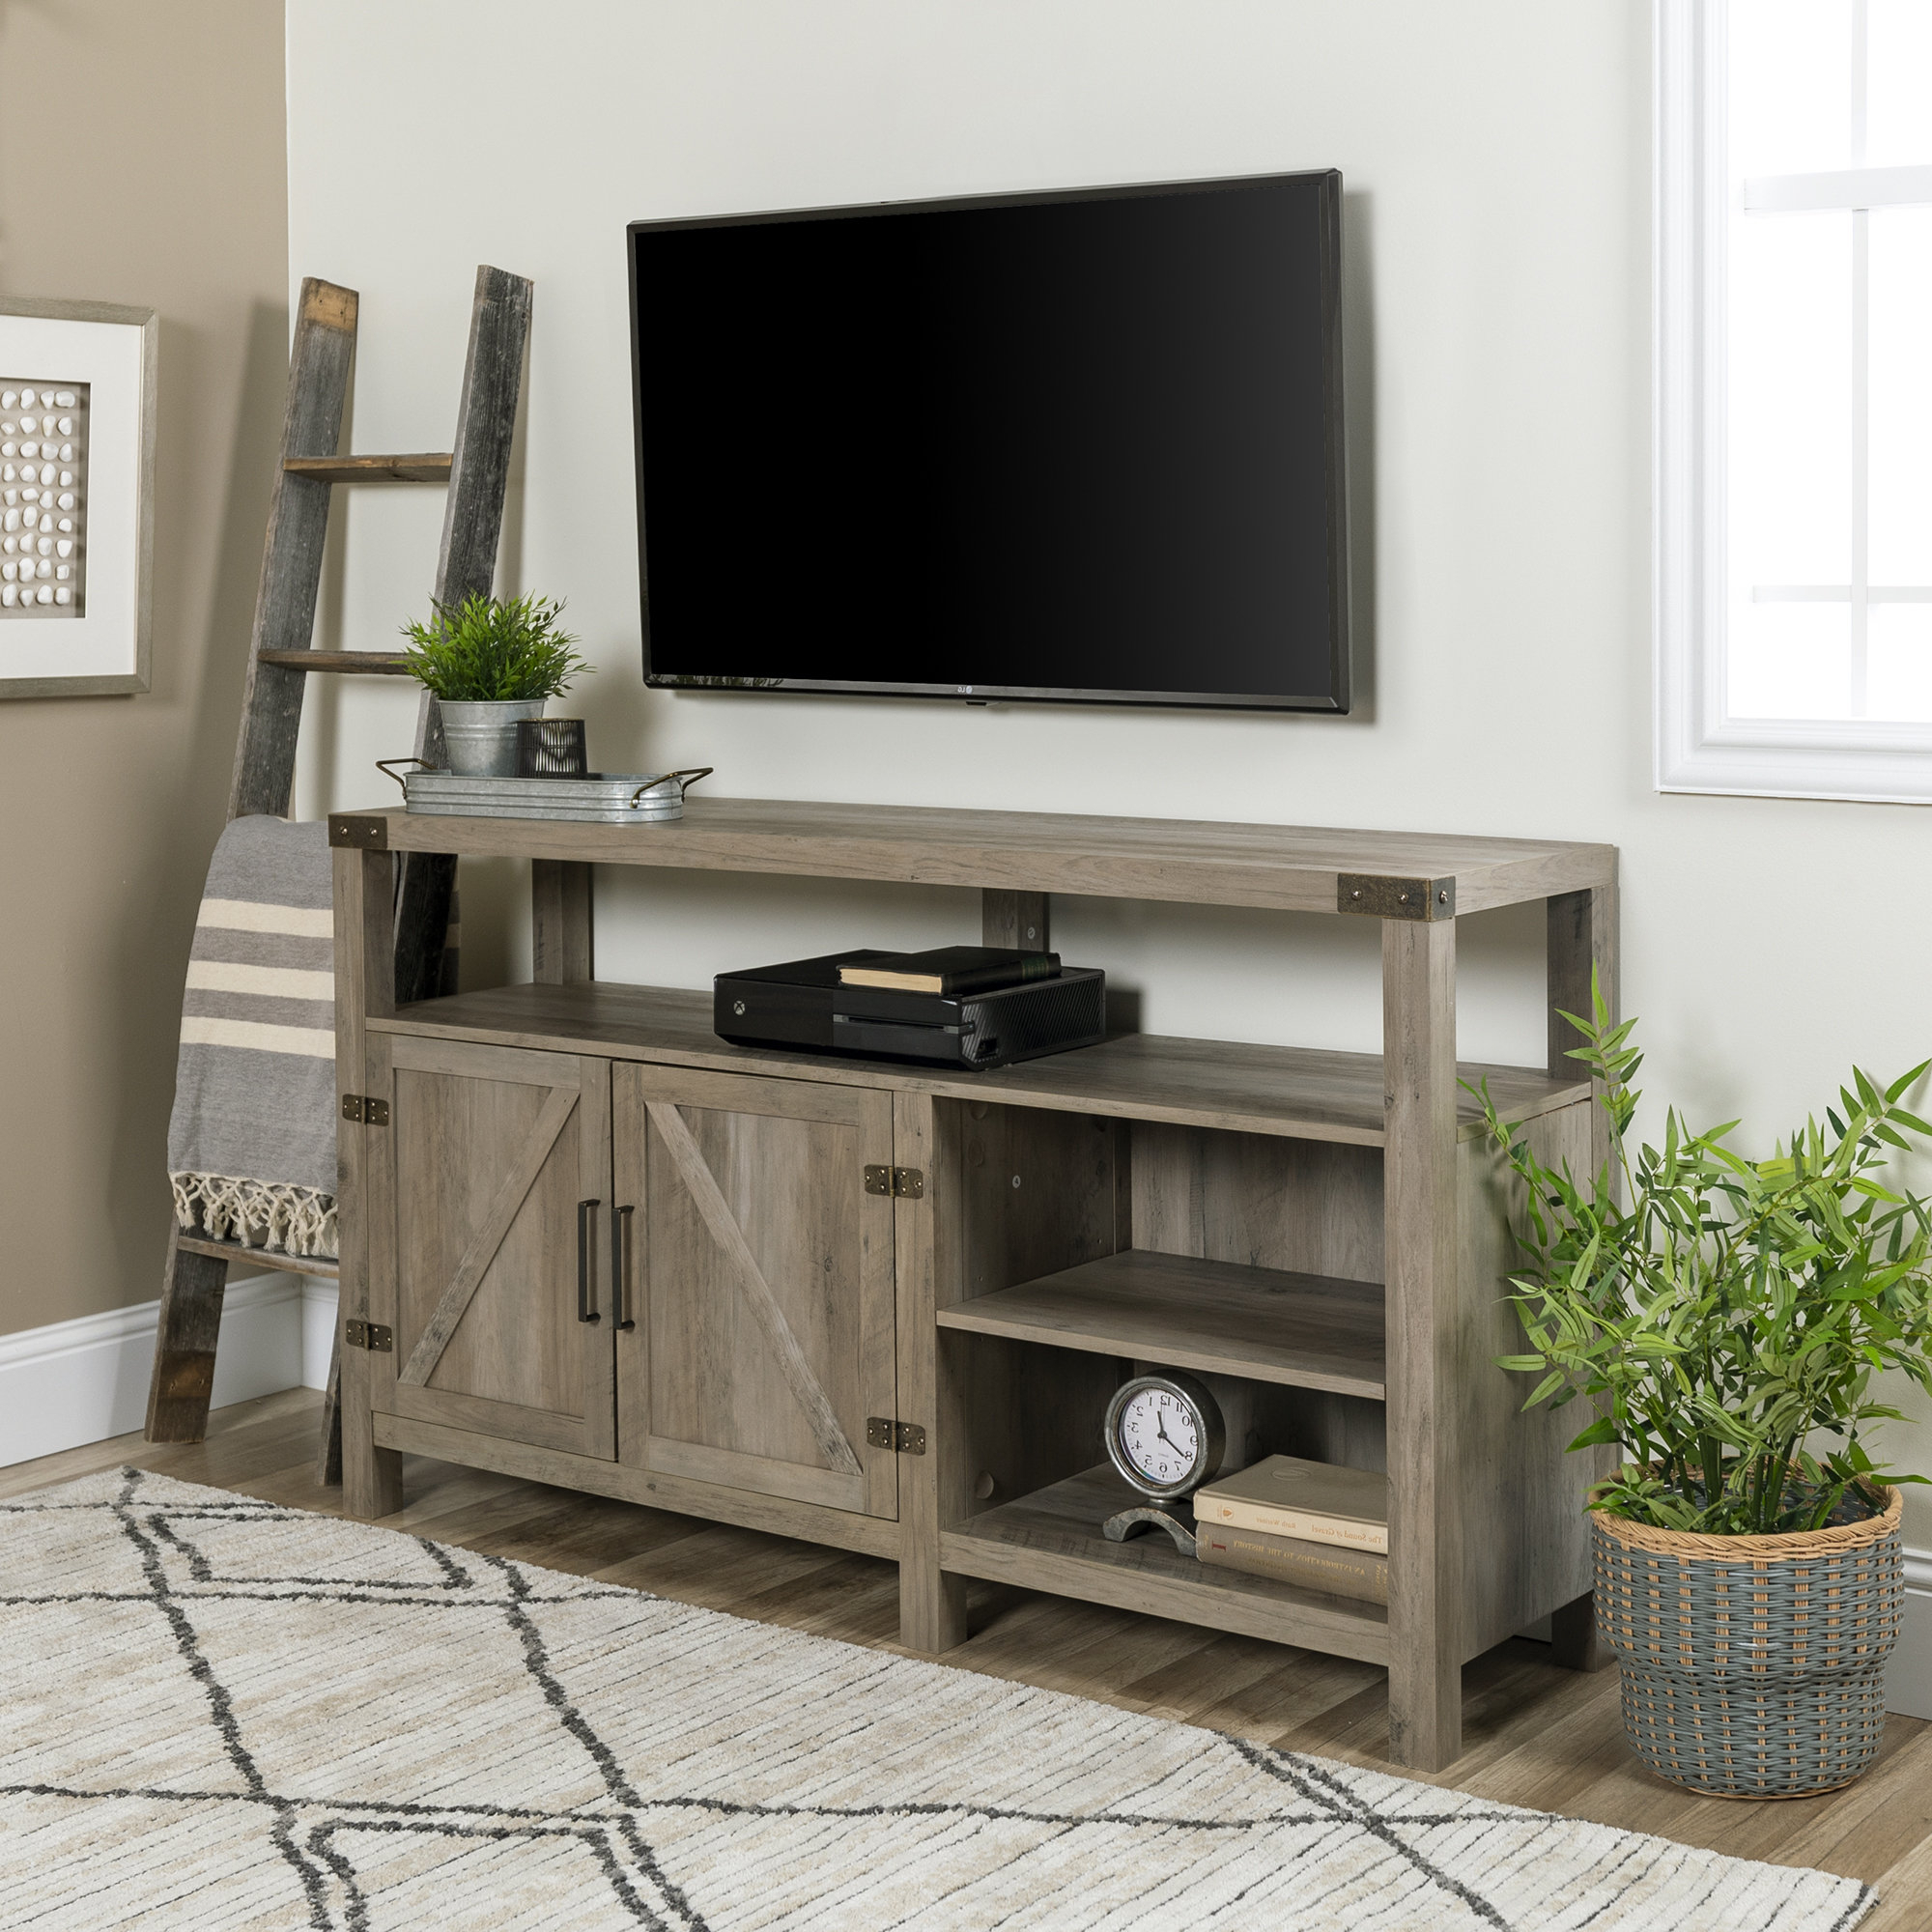 Wayfair With Widely Used Ducar 74 Inch Tv Stands (View 16 of 20)